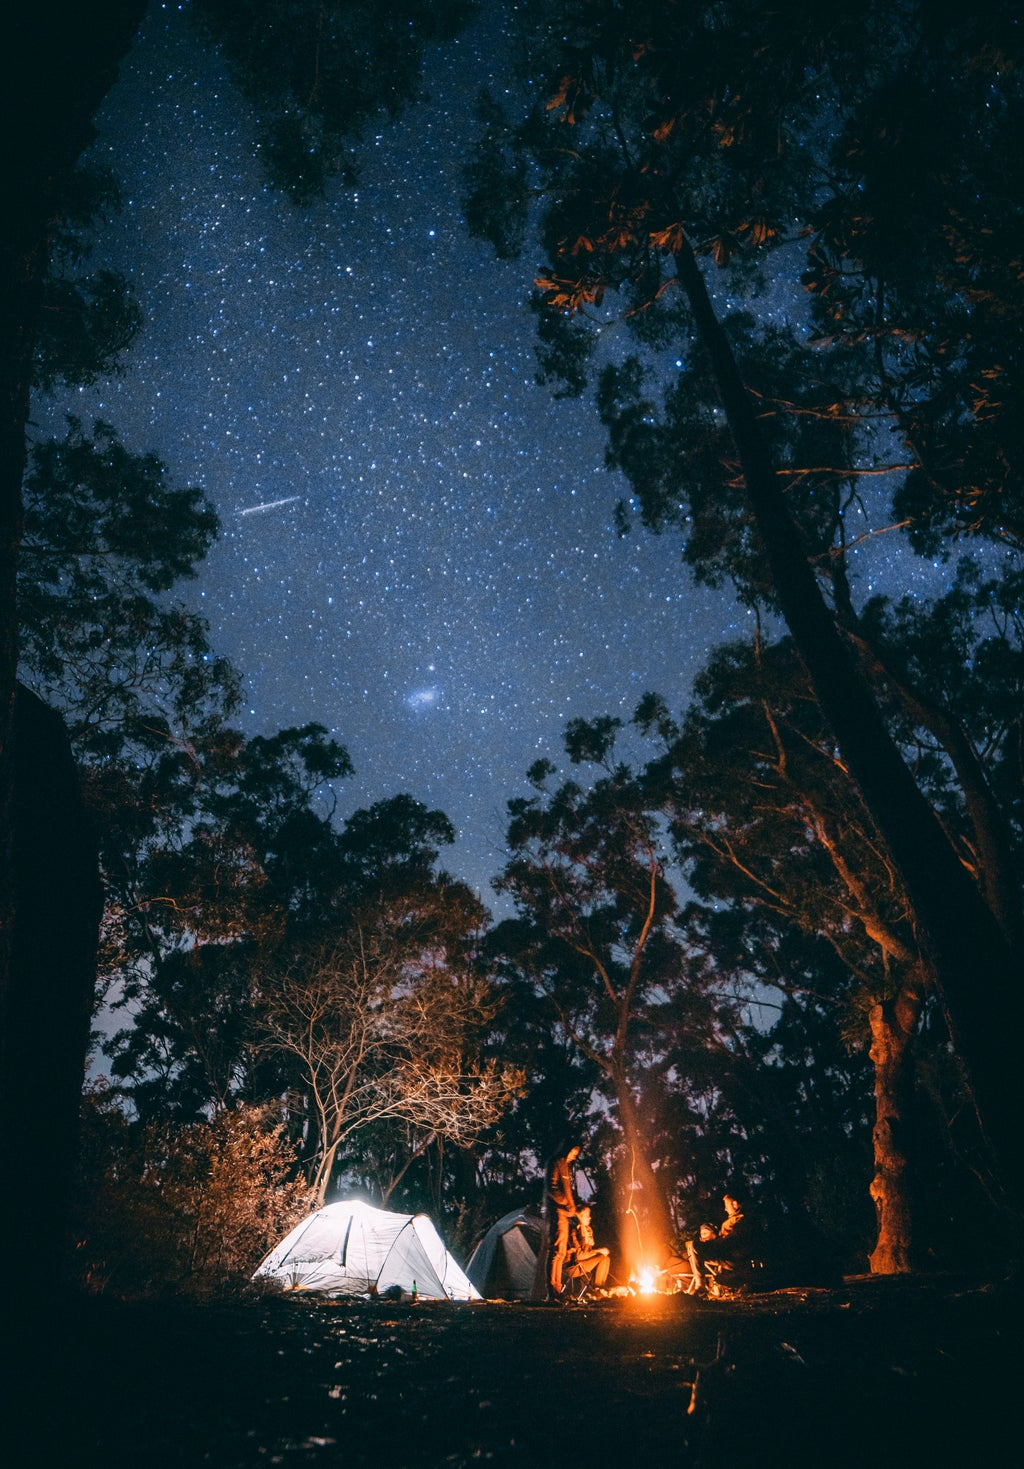 Bonfire and tent under the stars